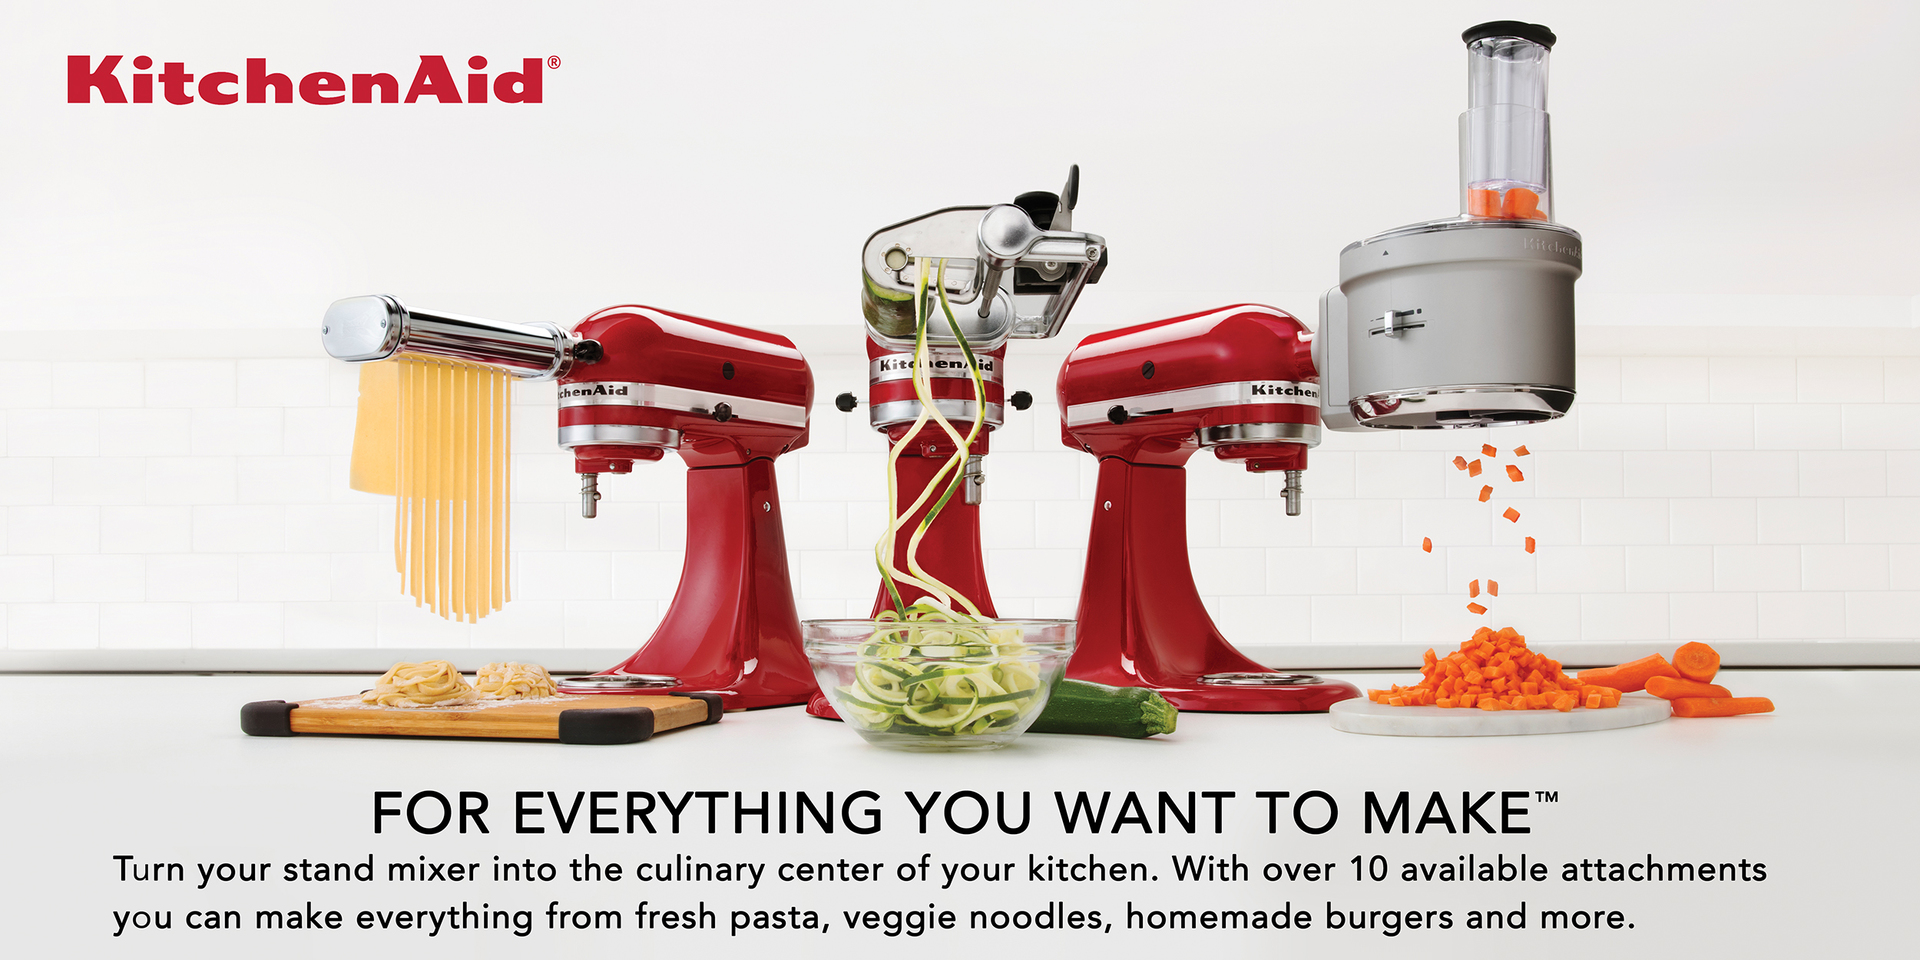 Kitchenaid For Everything You Want To Make